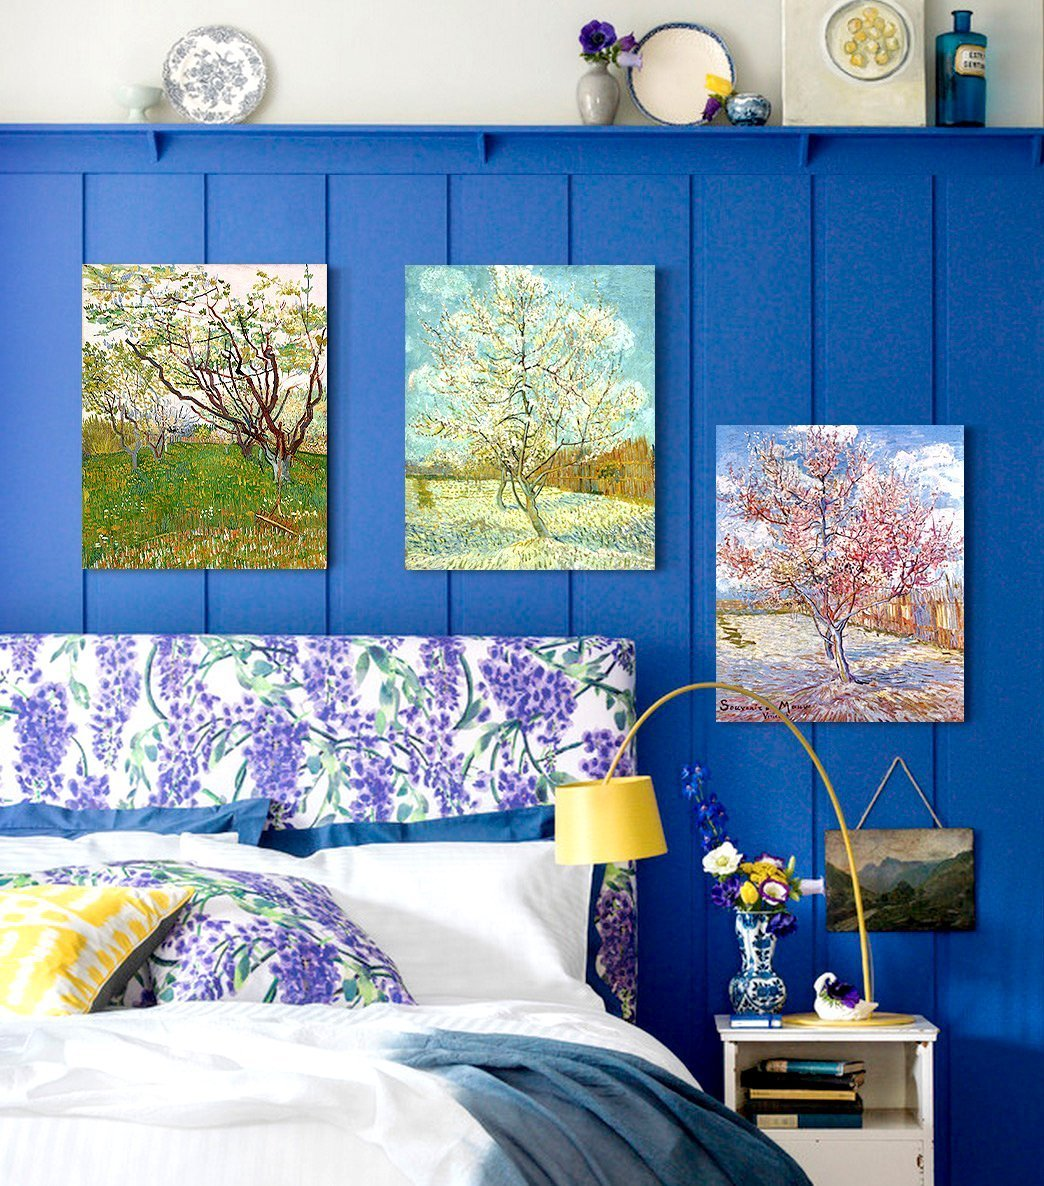 DecorArts Triptych Orchard Blossom Reproduction Image 2